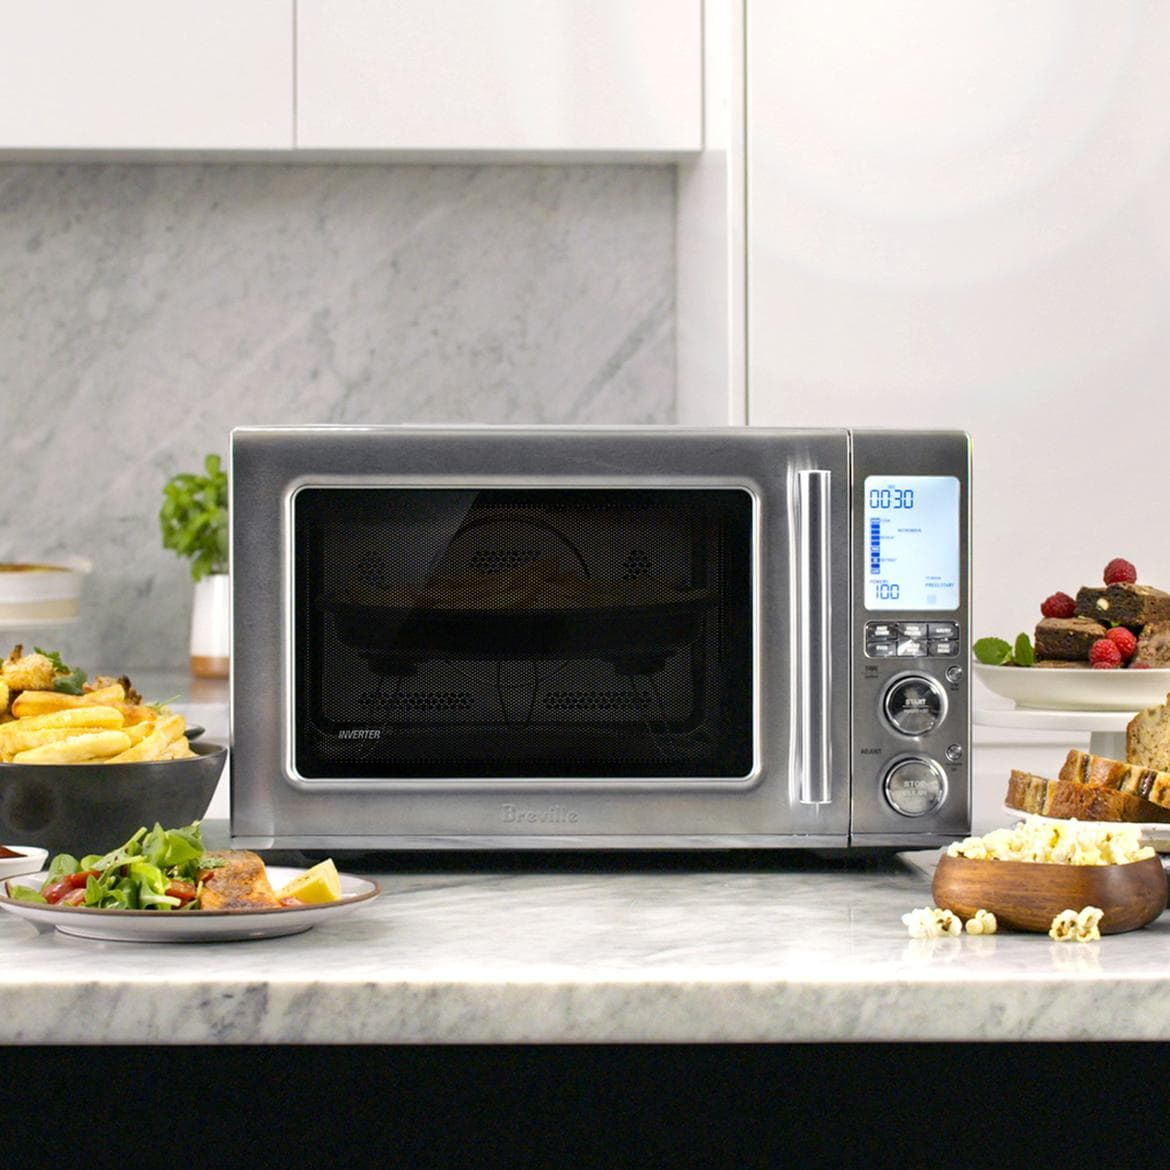 The Breville Combi Wave microwave air fryer combo saves counter space